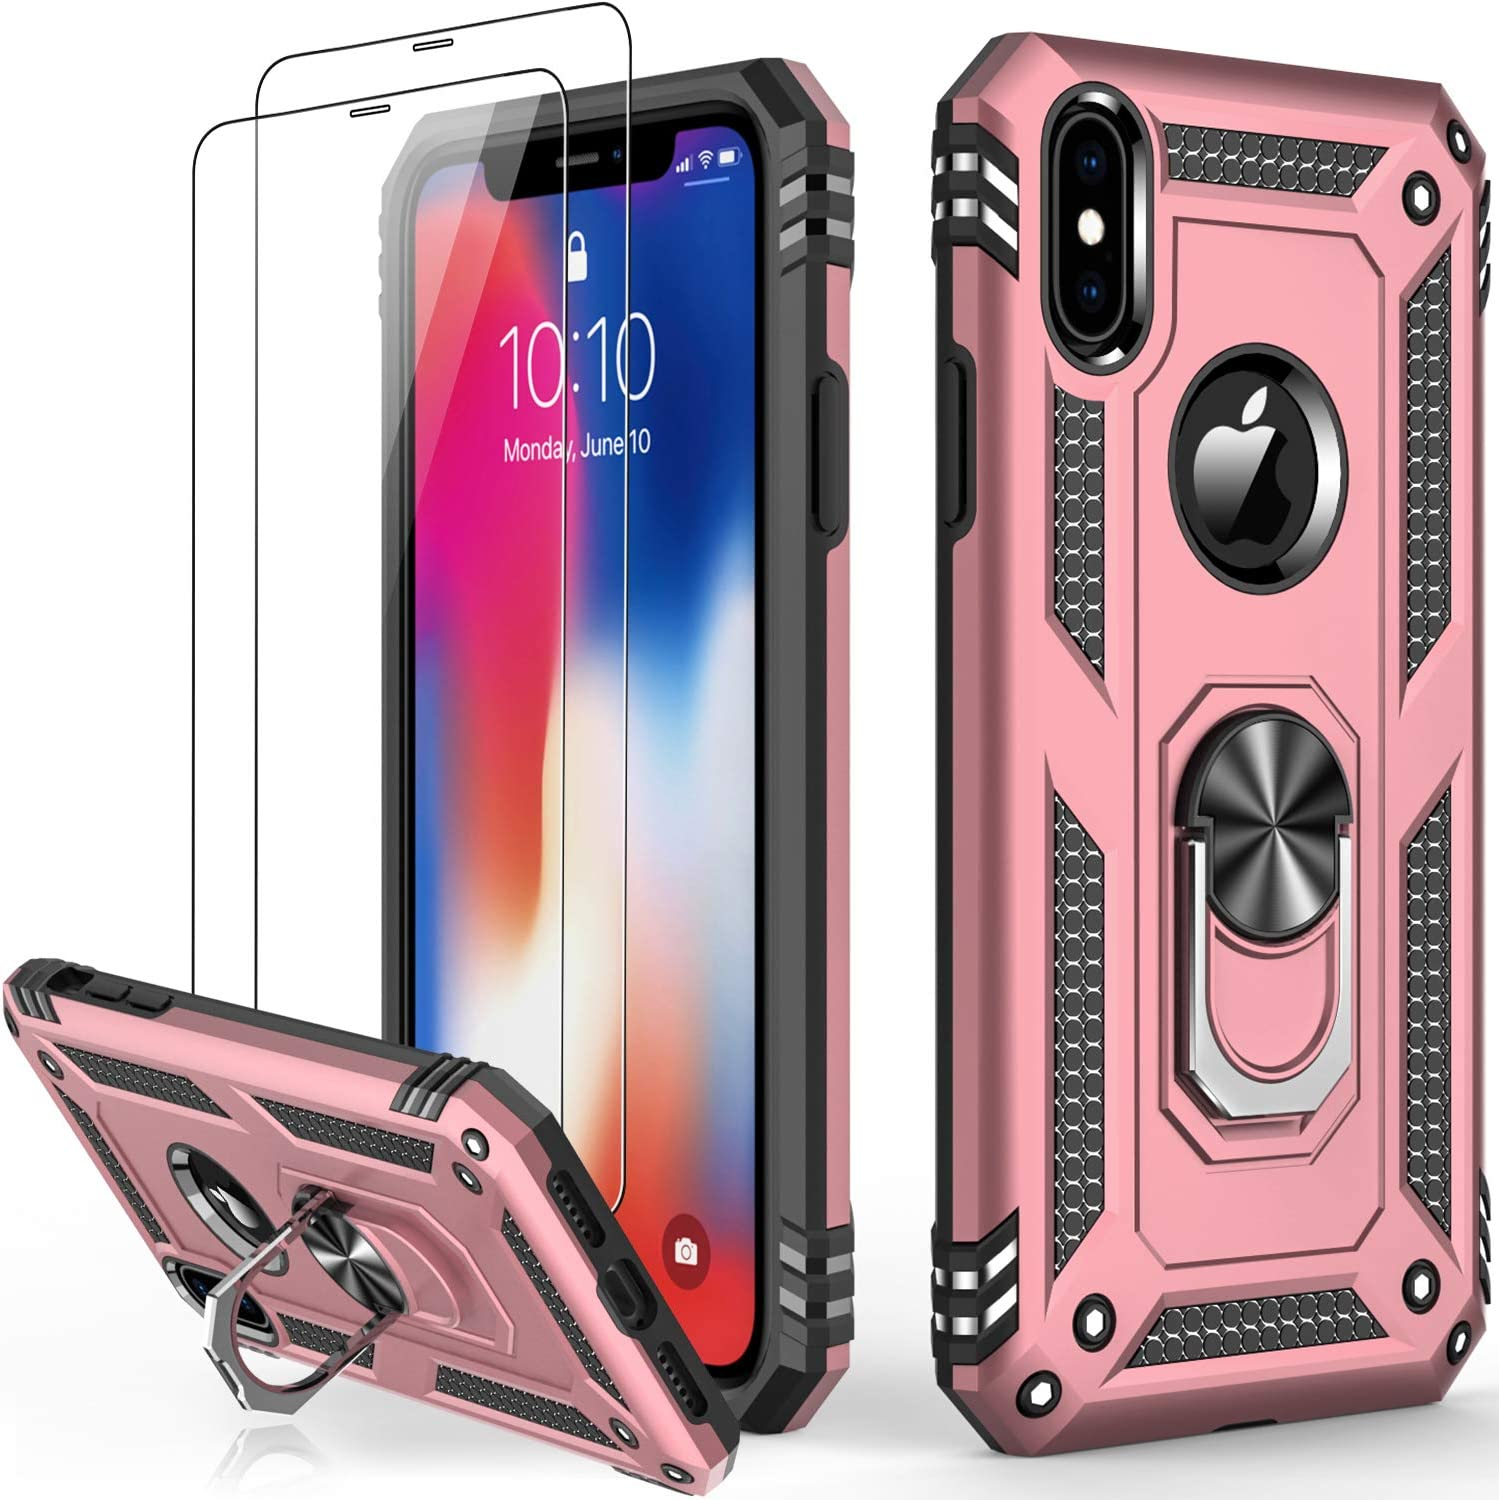 iPhone X Case Rose Gold,iPhone Xs Case with Glass Screen Protector,Military Grade 16ft. Drop Tested Cover with Magnetic Kickstand Protective Phone Case for iPhone Xs/iPhone X